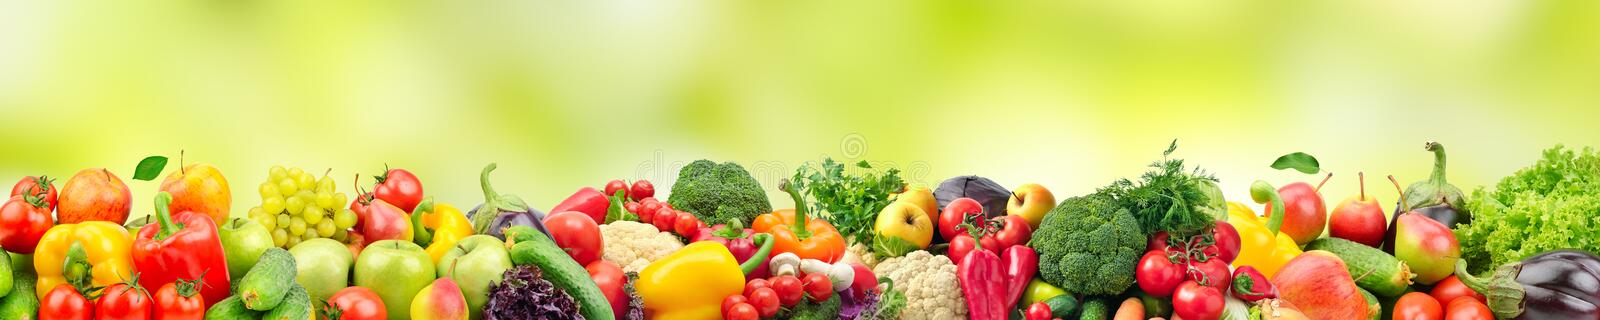 Panoramic wide photo healthy and useful vegetables and fruits is. Olated on white background. Assortment fresh products - apples, bananas, grapes, pears, carrots stock illustration